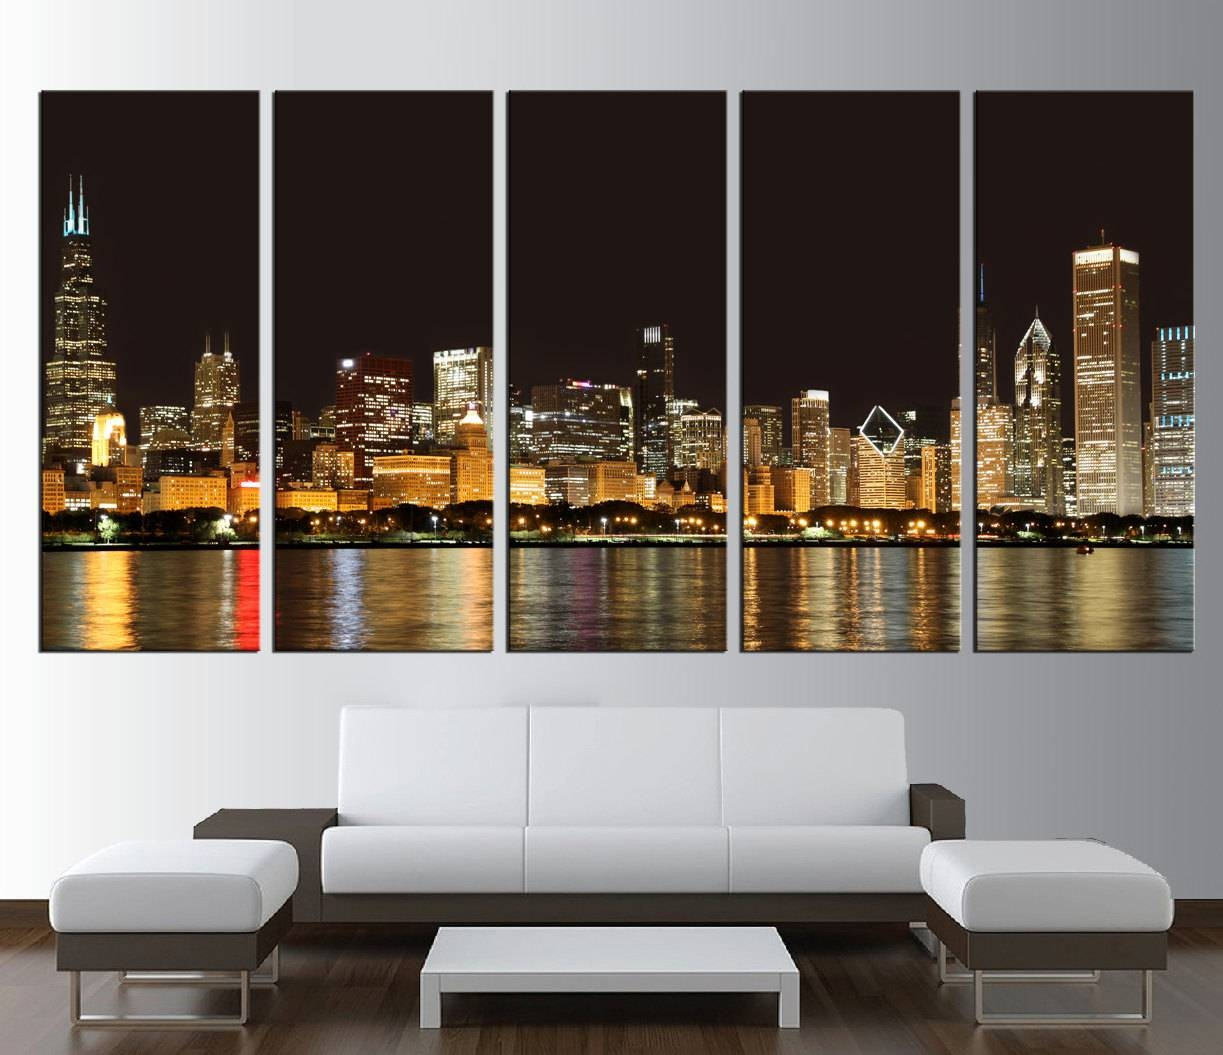 Wall Art Design: Extra Large Wall Art Rectangle Black Gold Throughout Current Huge Wall Art Canvas (View 18 of 20)